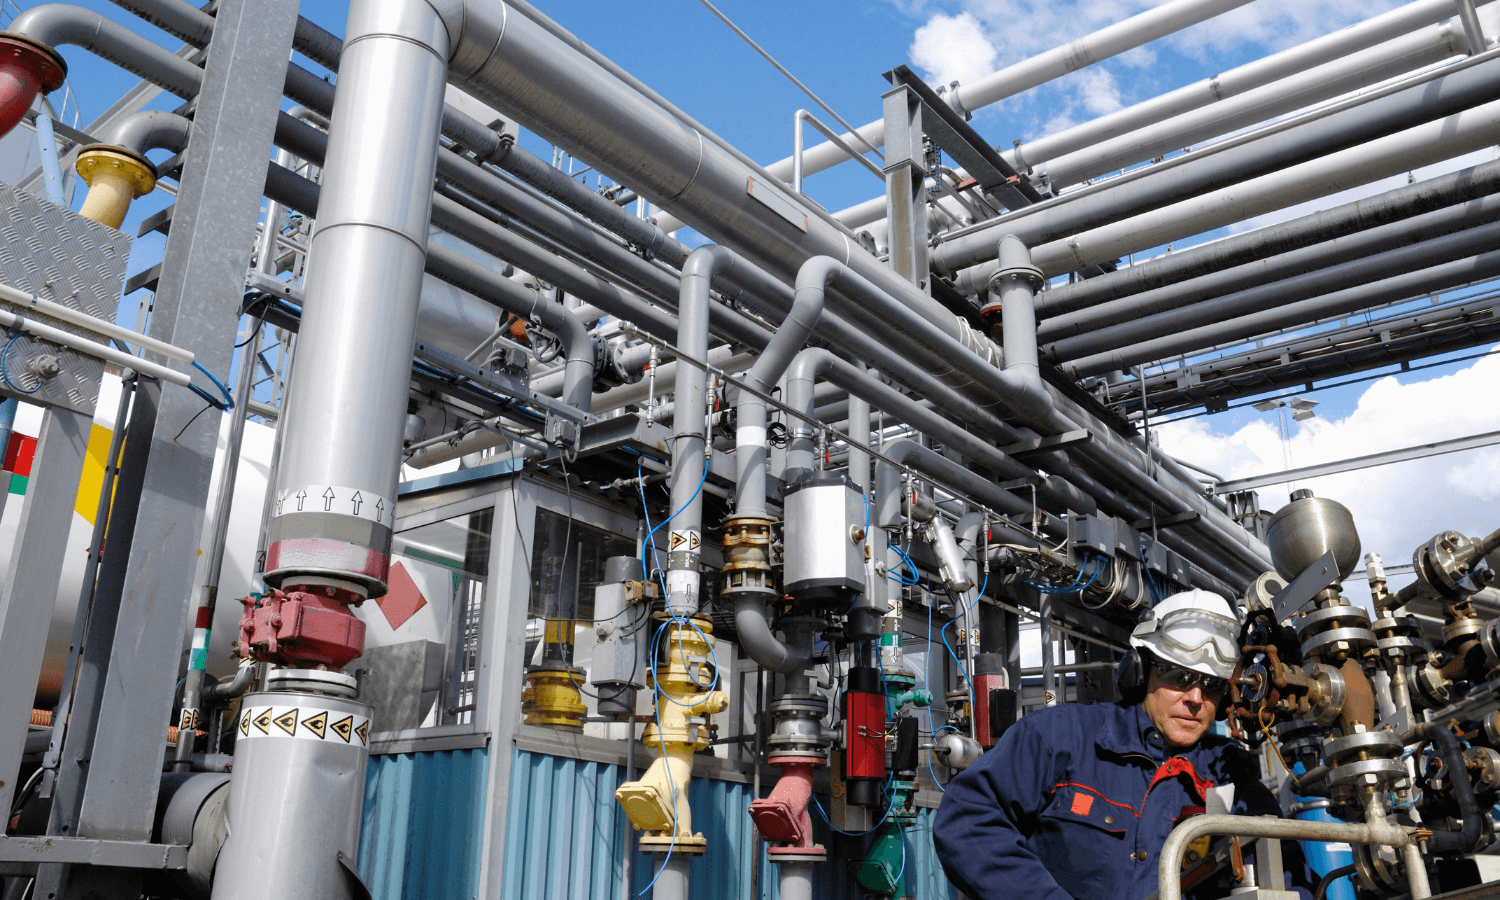 Multinational Gas and Power Company Identifies Potential Disruptors